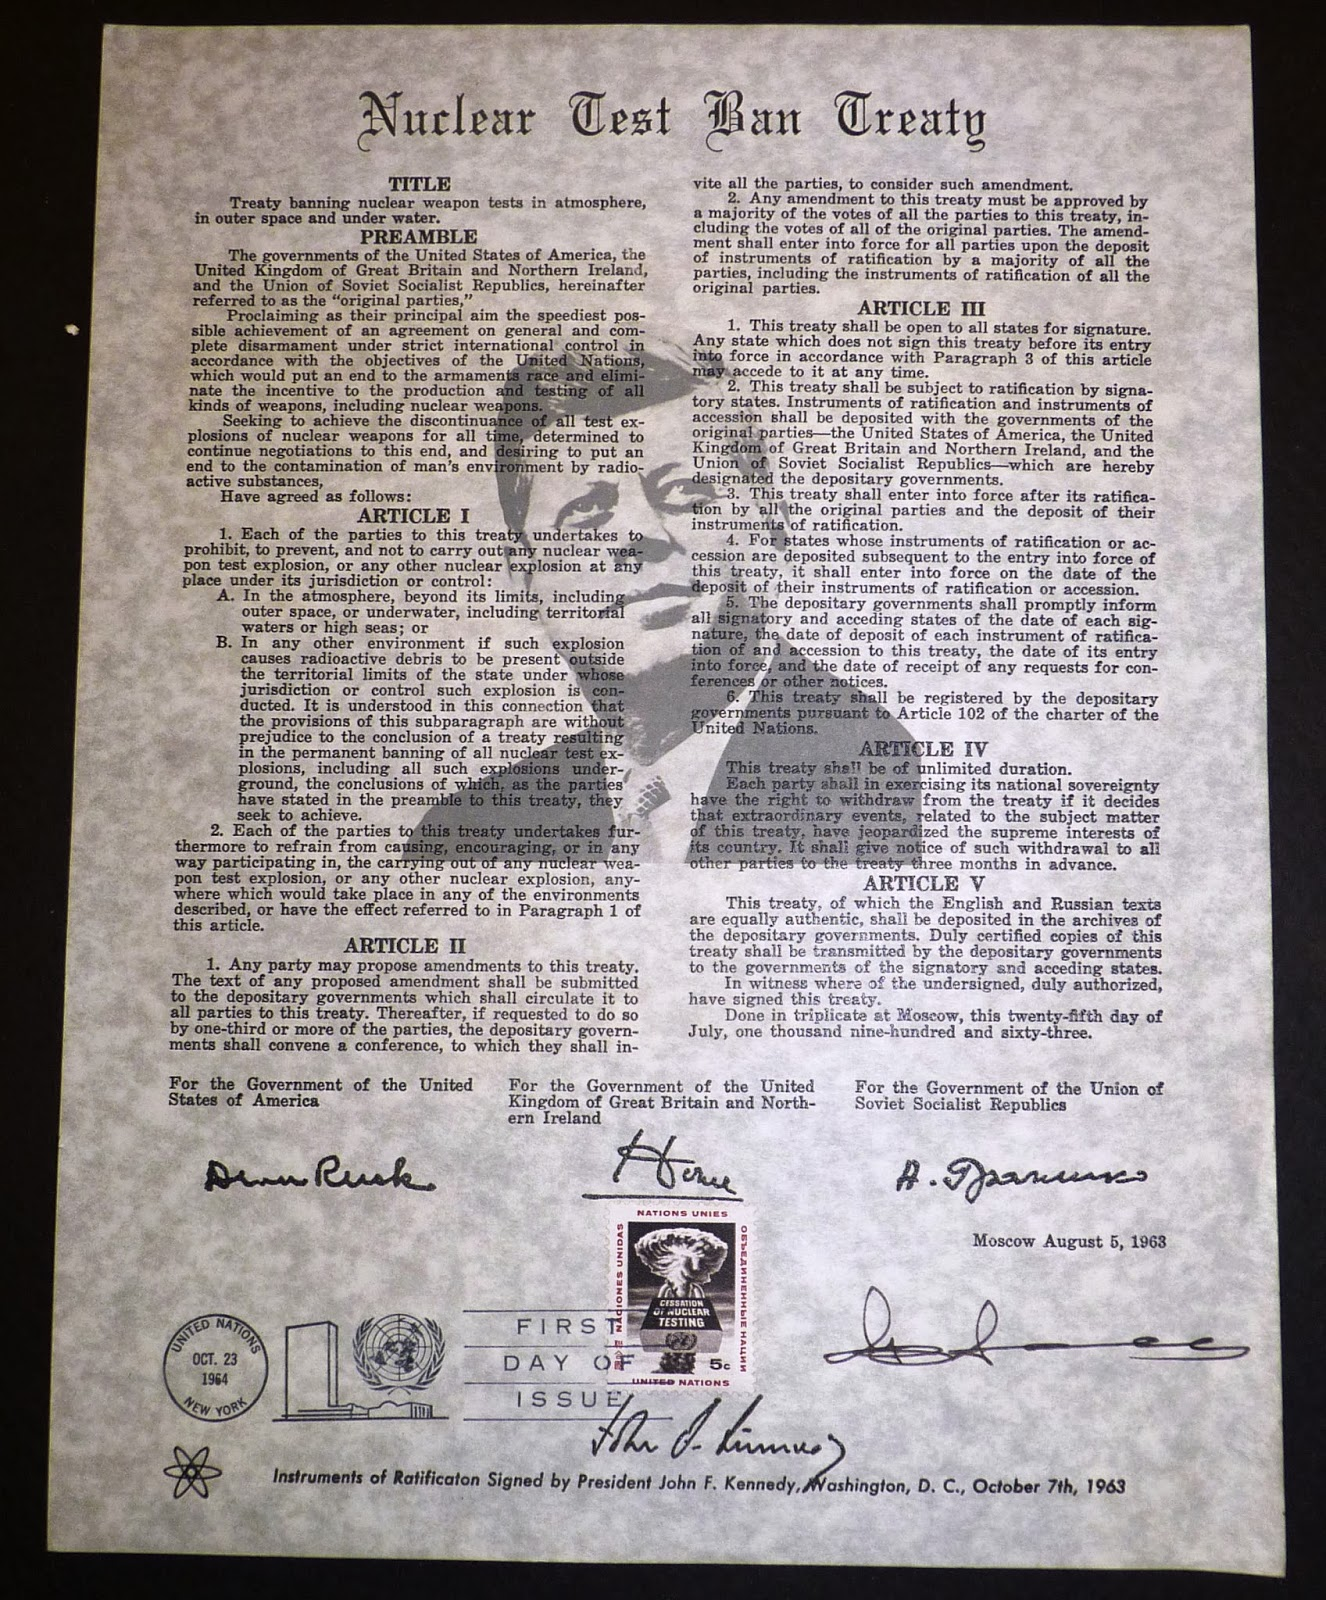 president john f kennedy essay However thousands of other papers on jfk's untimely death were withheld for national security john fitzgerald kennedy was born on may 29, 1917, in brookline the death of president john f kennedy was an unspeakable national tragedy.